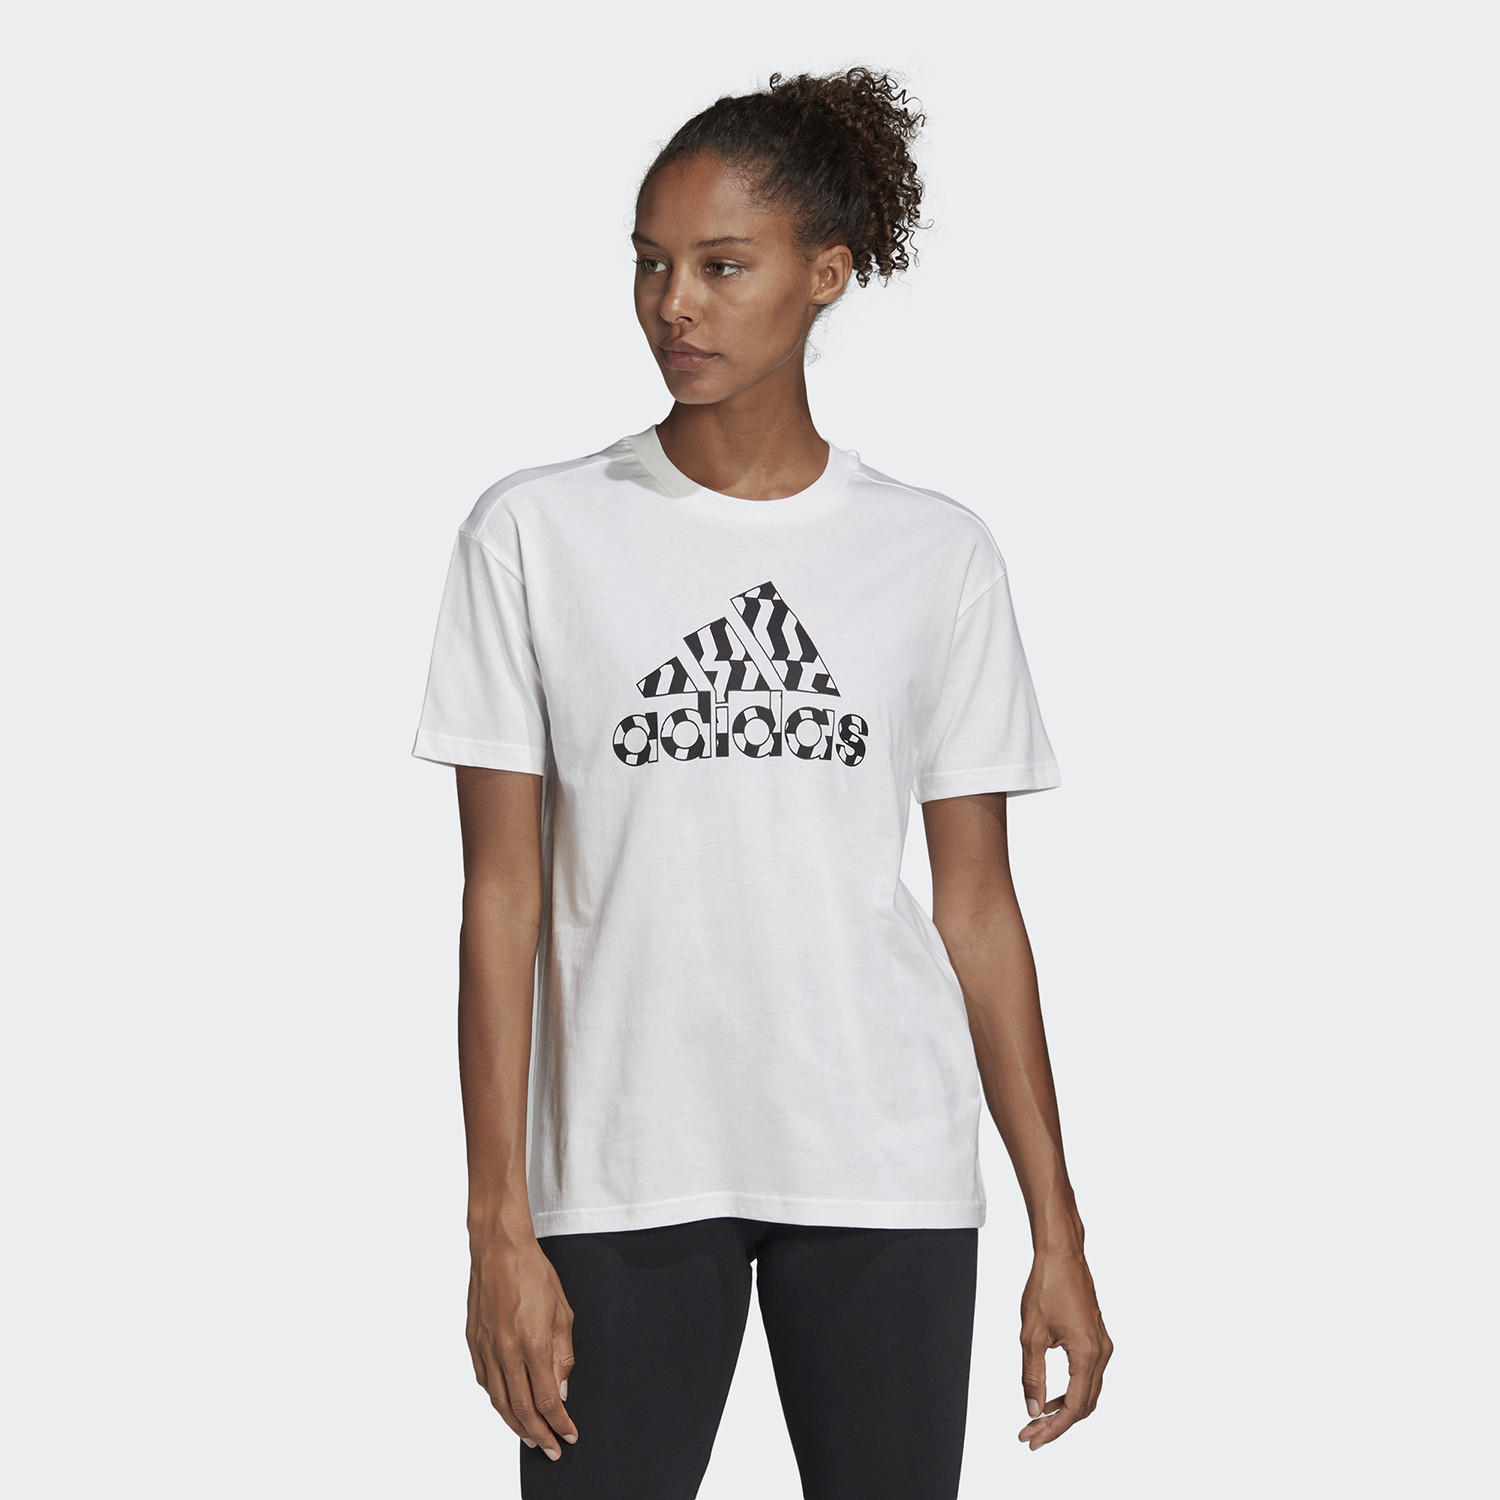 adidas Must Haves Graphic Women's Tee (9000045063_1539)